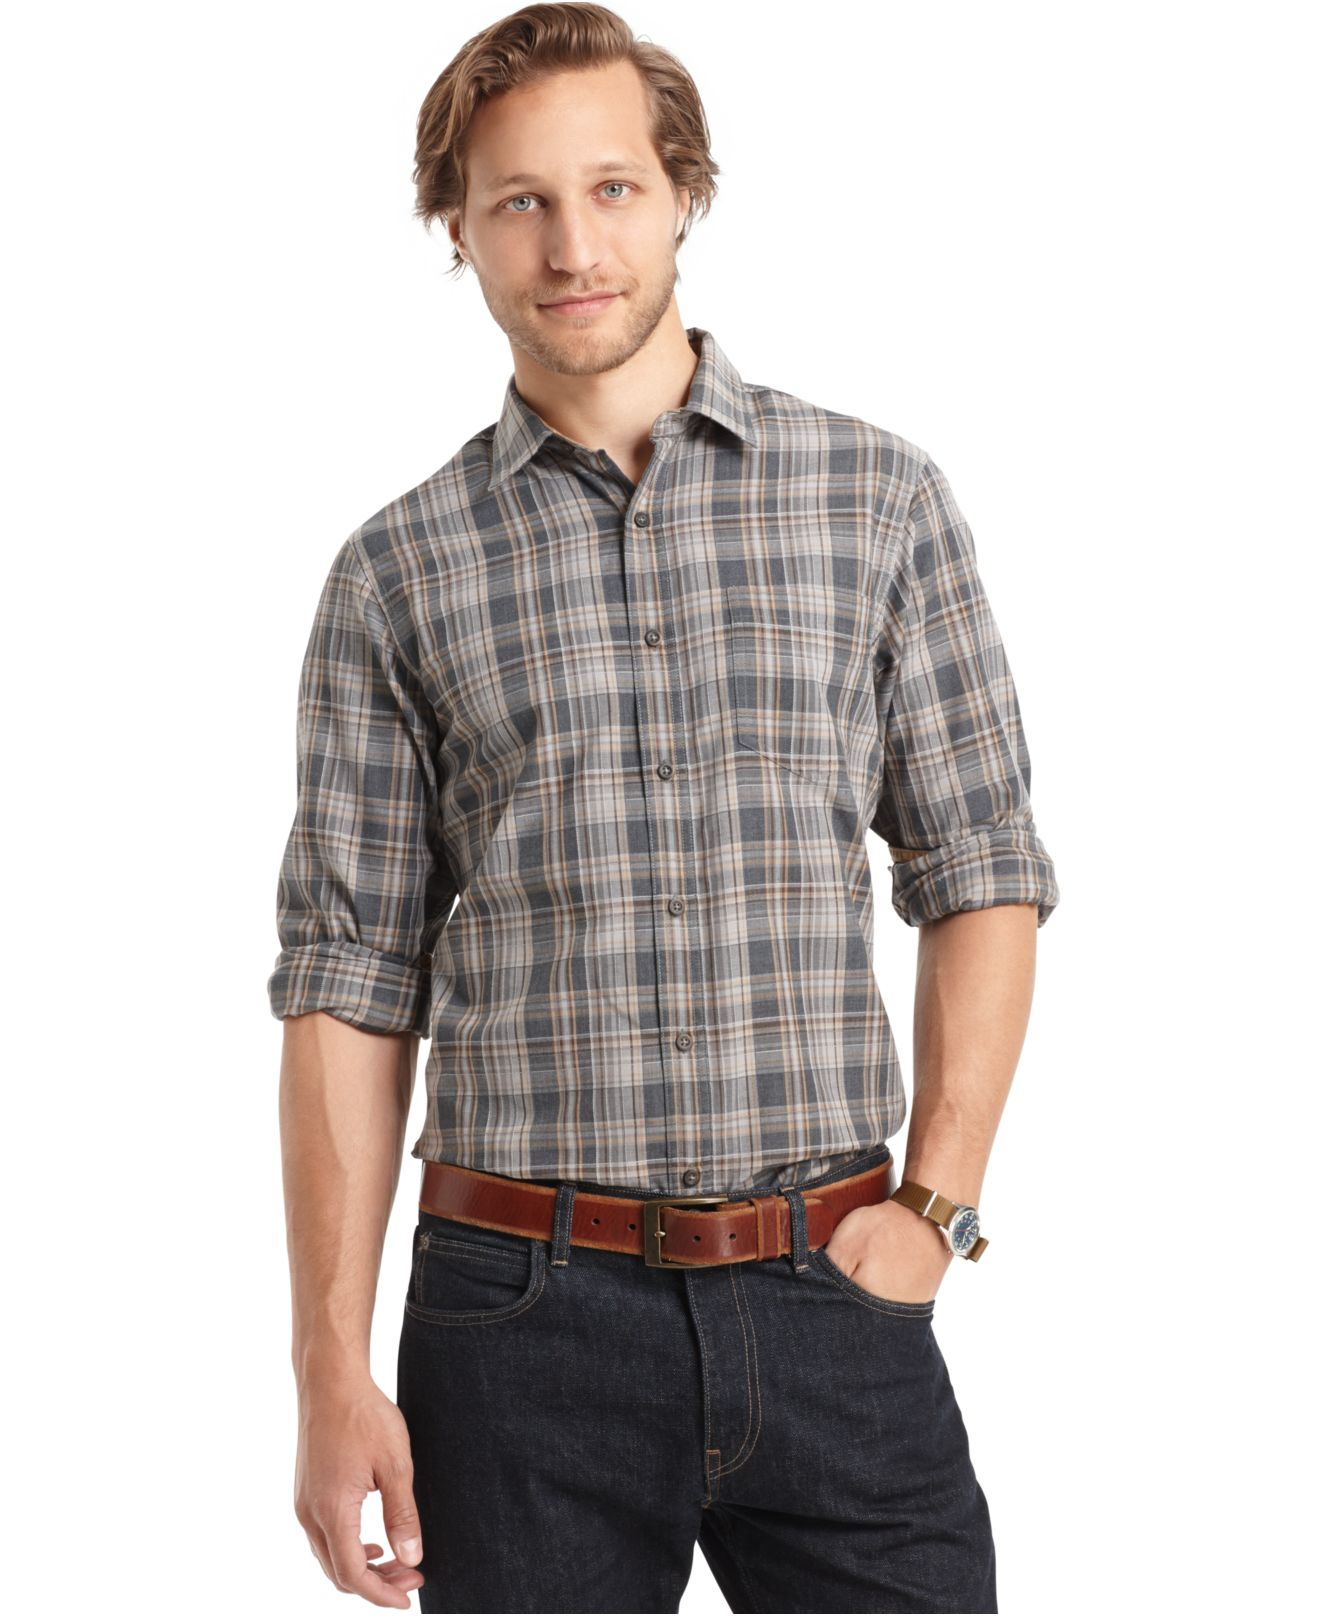 Shop RedHead Men's Clothing at Bass Pro Shops online. Find top rated shirts, hats & caps, outerwear & more for a great price at treedb.tk Many Styles also available in Big & Tall Sizes.